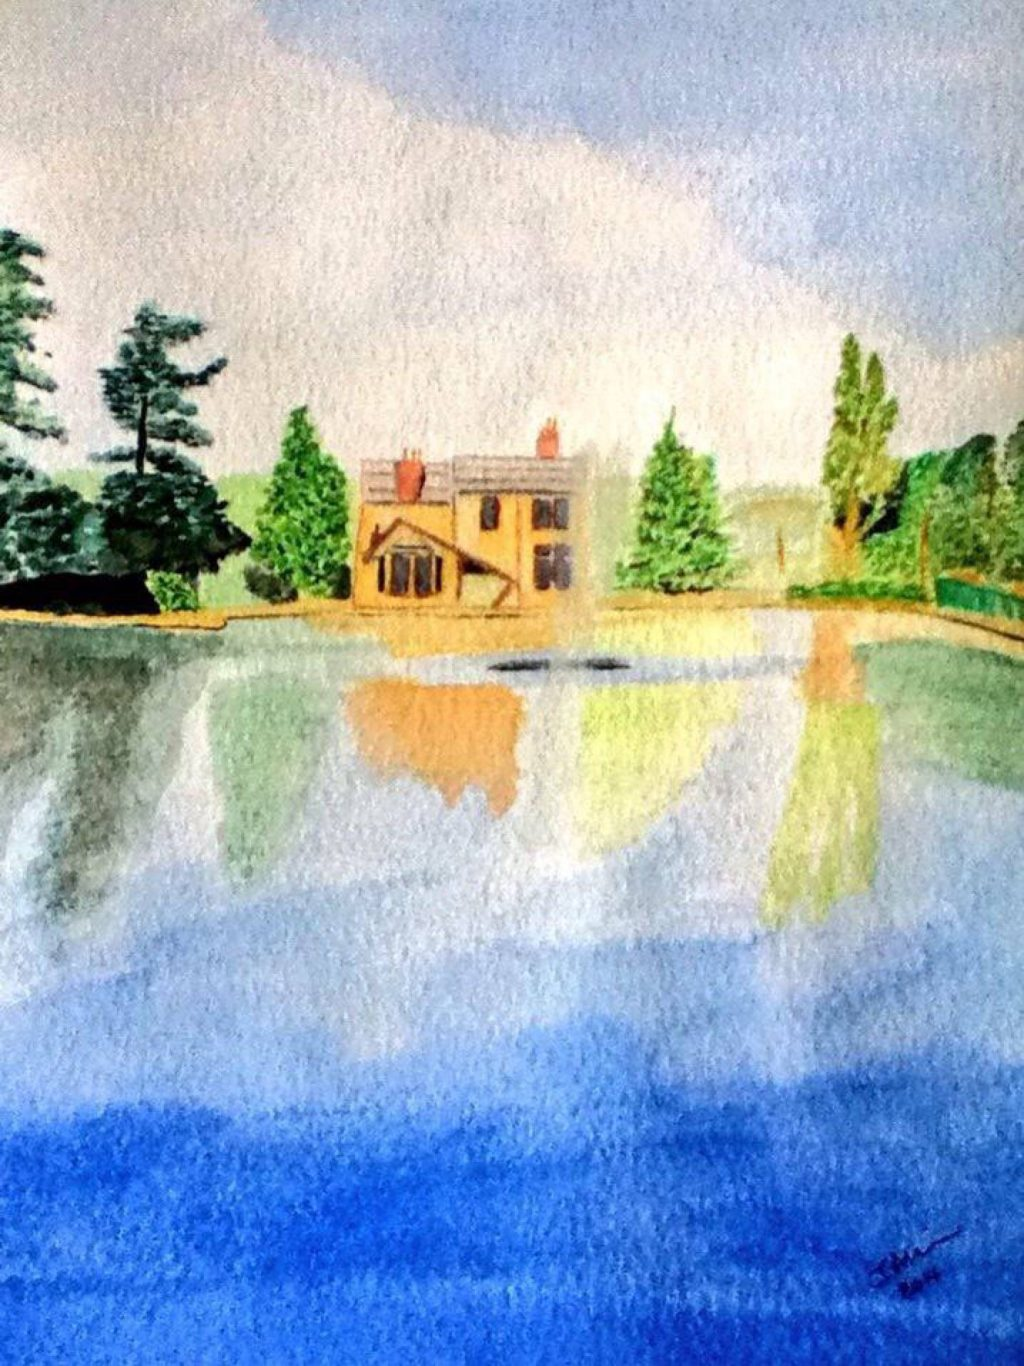 Papplewick Pumping Station, UK Watercolor Painting